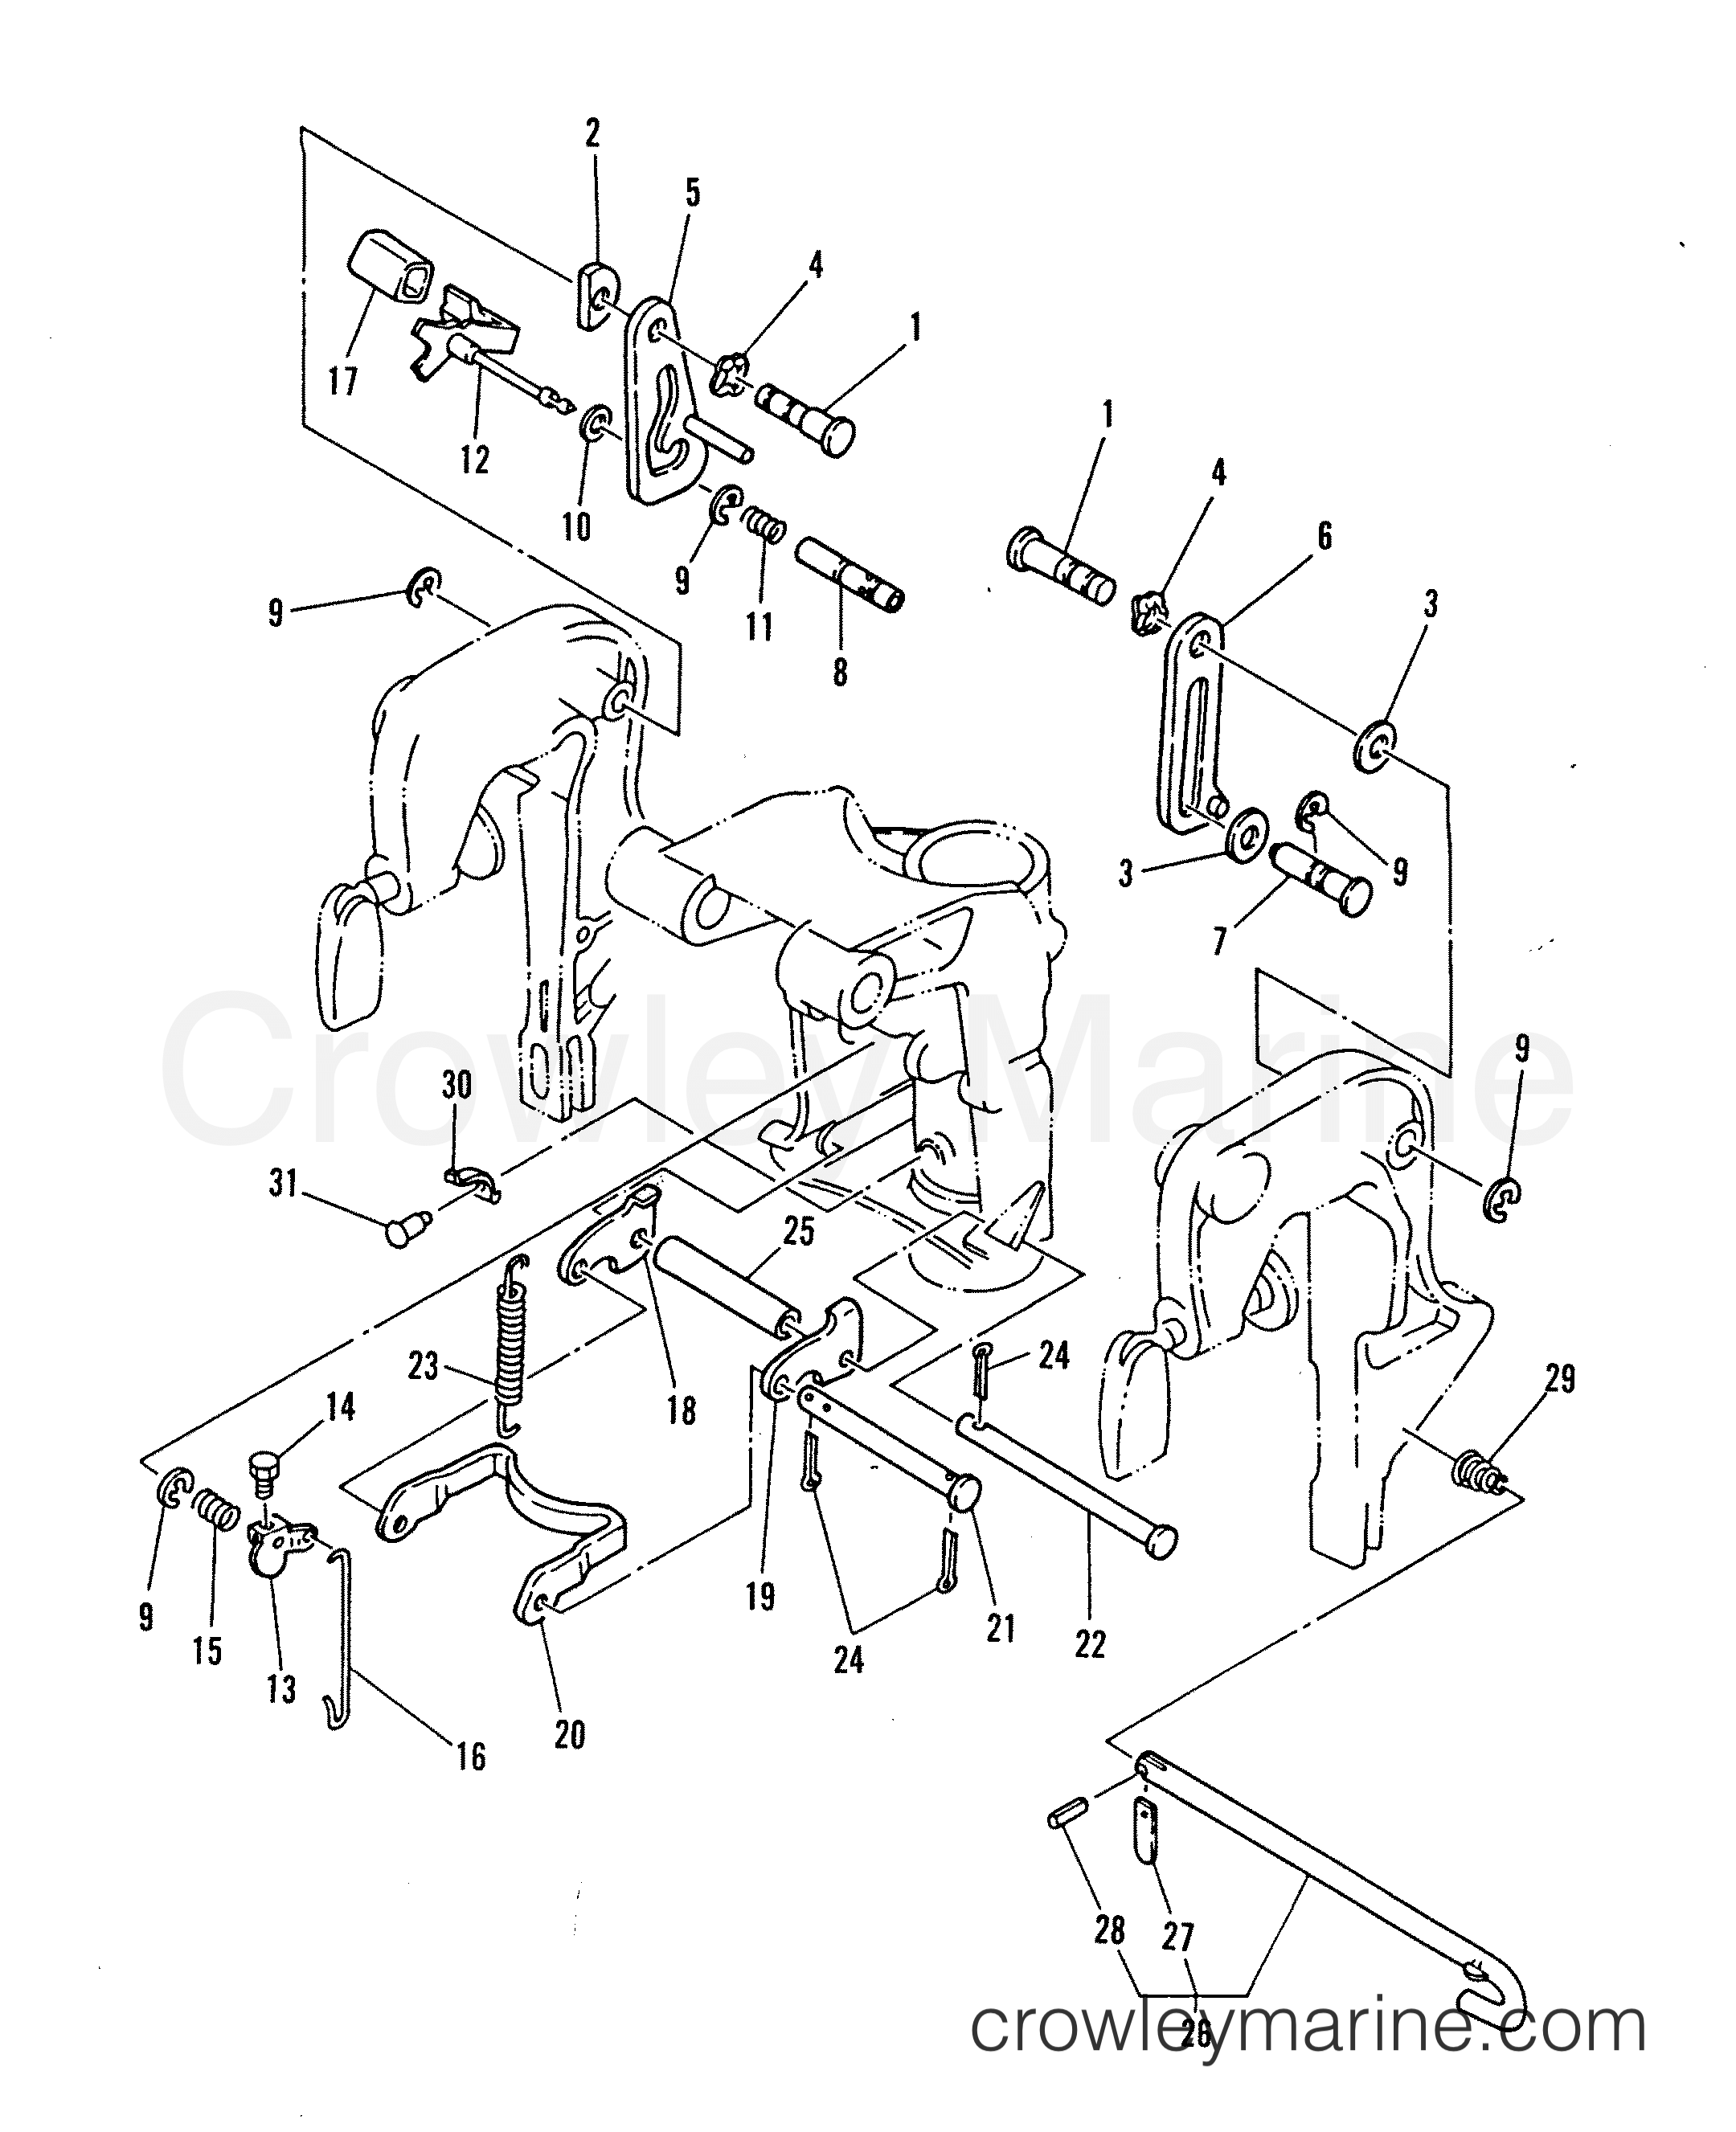 mariner outboard motor parts diagram wiring diagrams Gun Identification by Serial Number tilt lever pin 1986 mariner outboard 40 elo 7040716 8hp mariner outboard parts diagram mariner outboard motor parts list